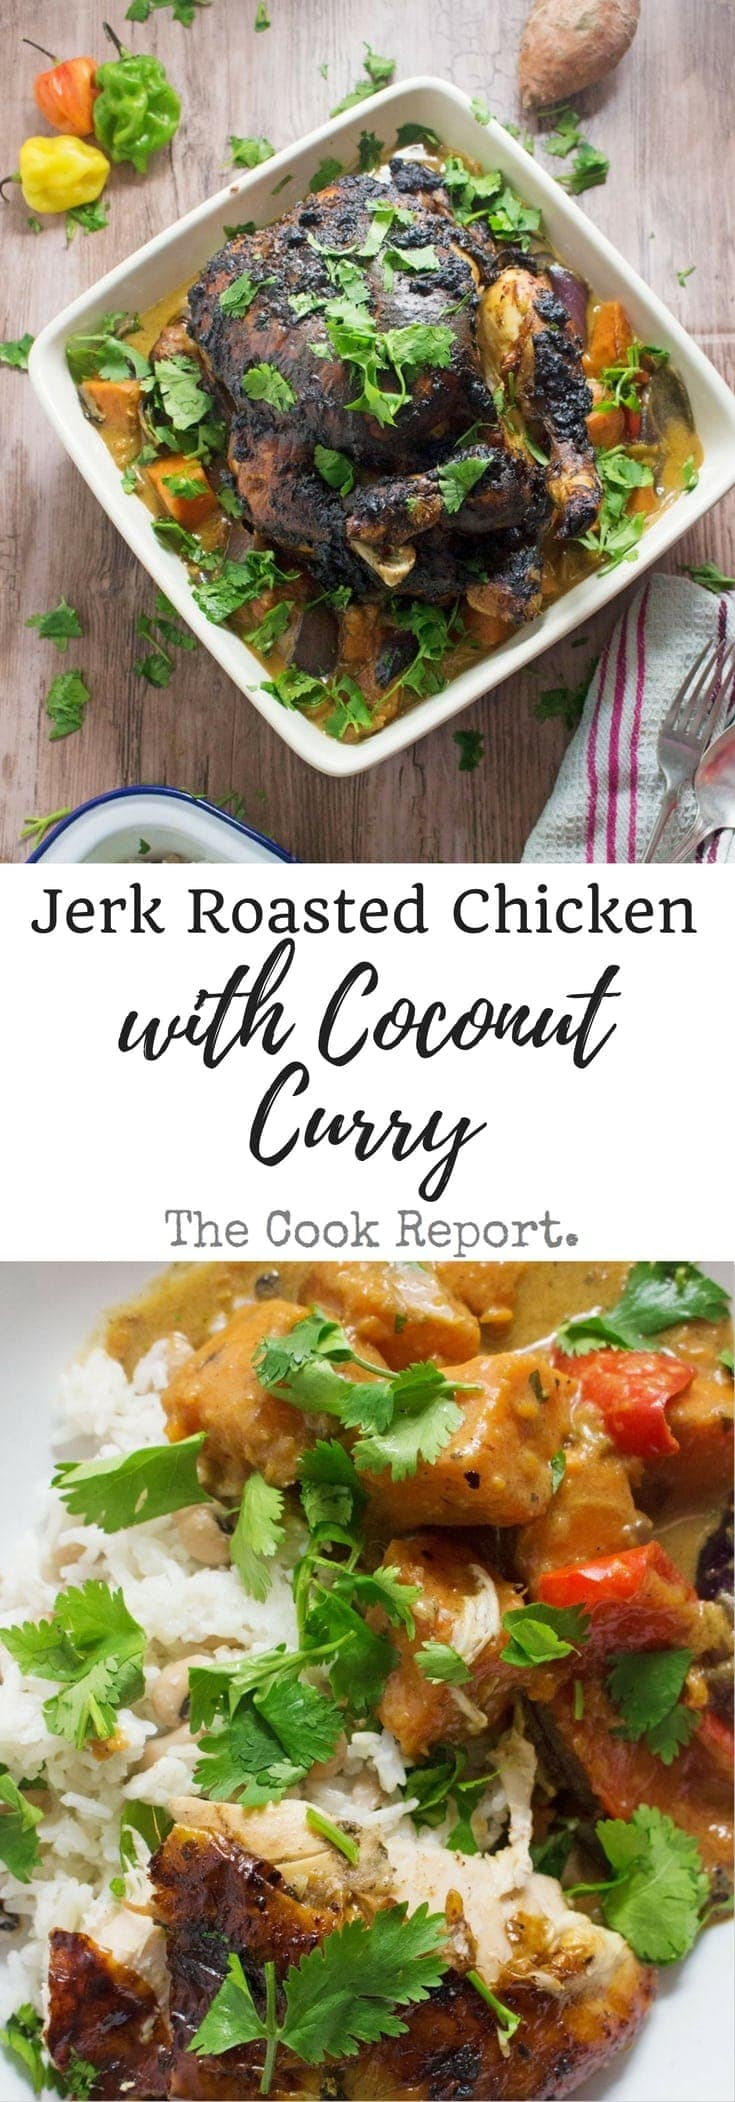 The chicken is coated in jerk spice paste before roasting over chopped vegetables. Serve with a rich and tasty curry sauce made with the cooking juices!